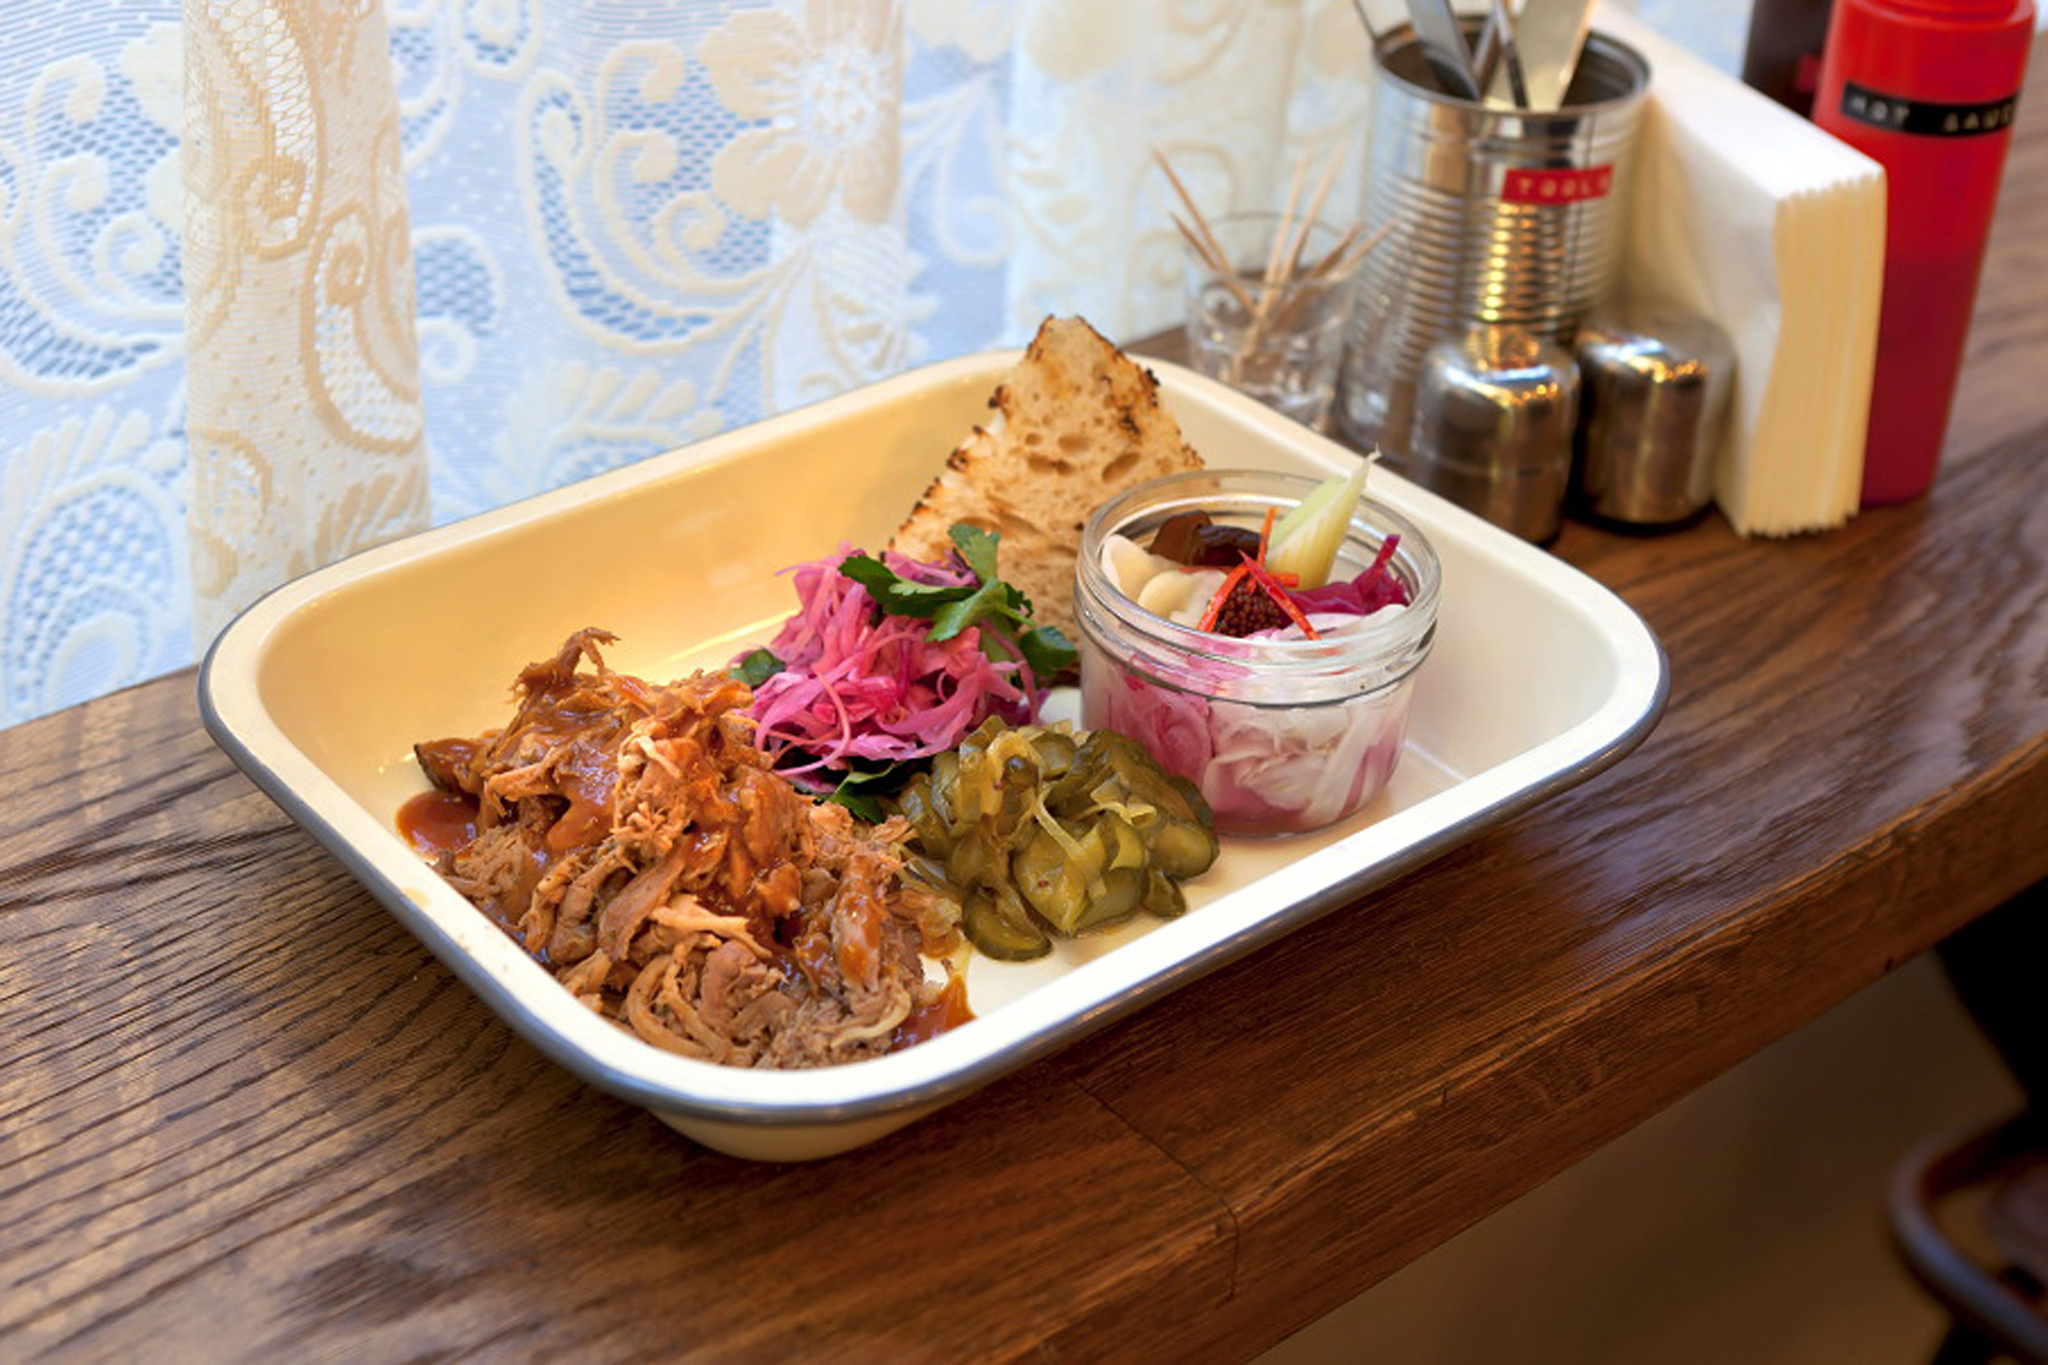 Pulled pork at Pitt Cue Co